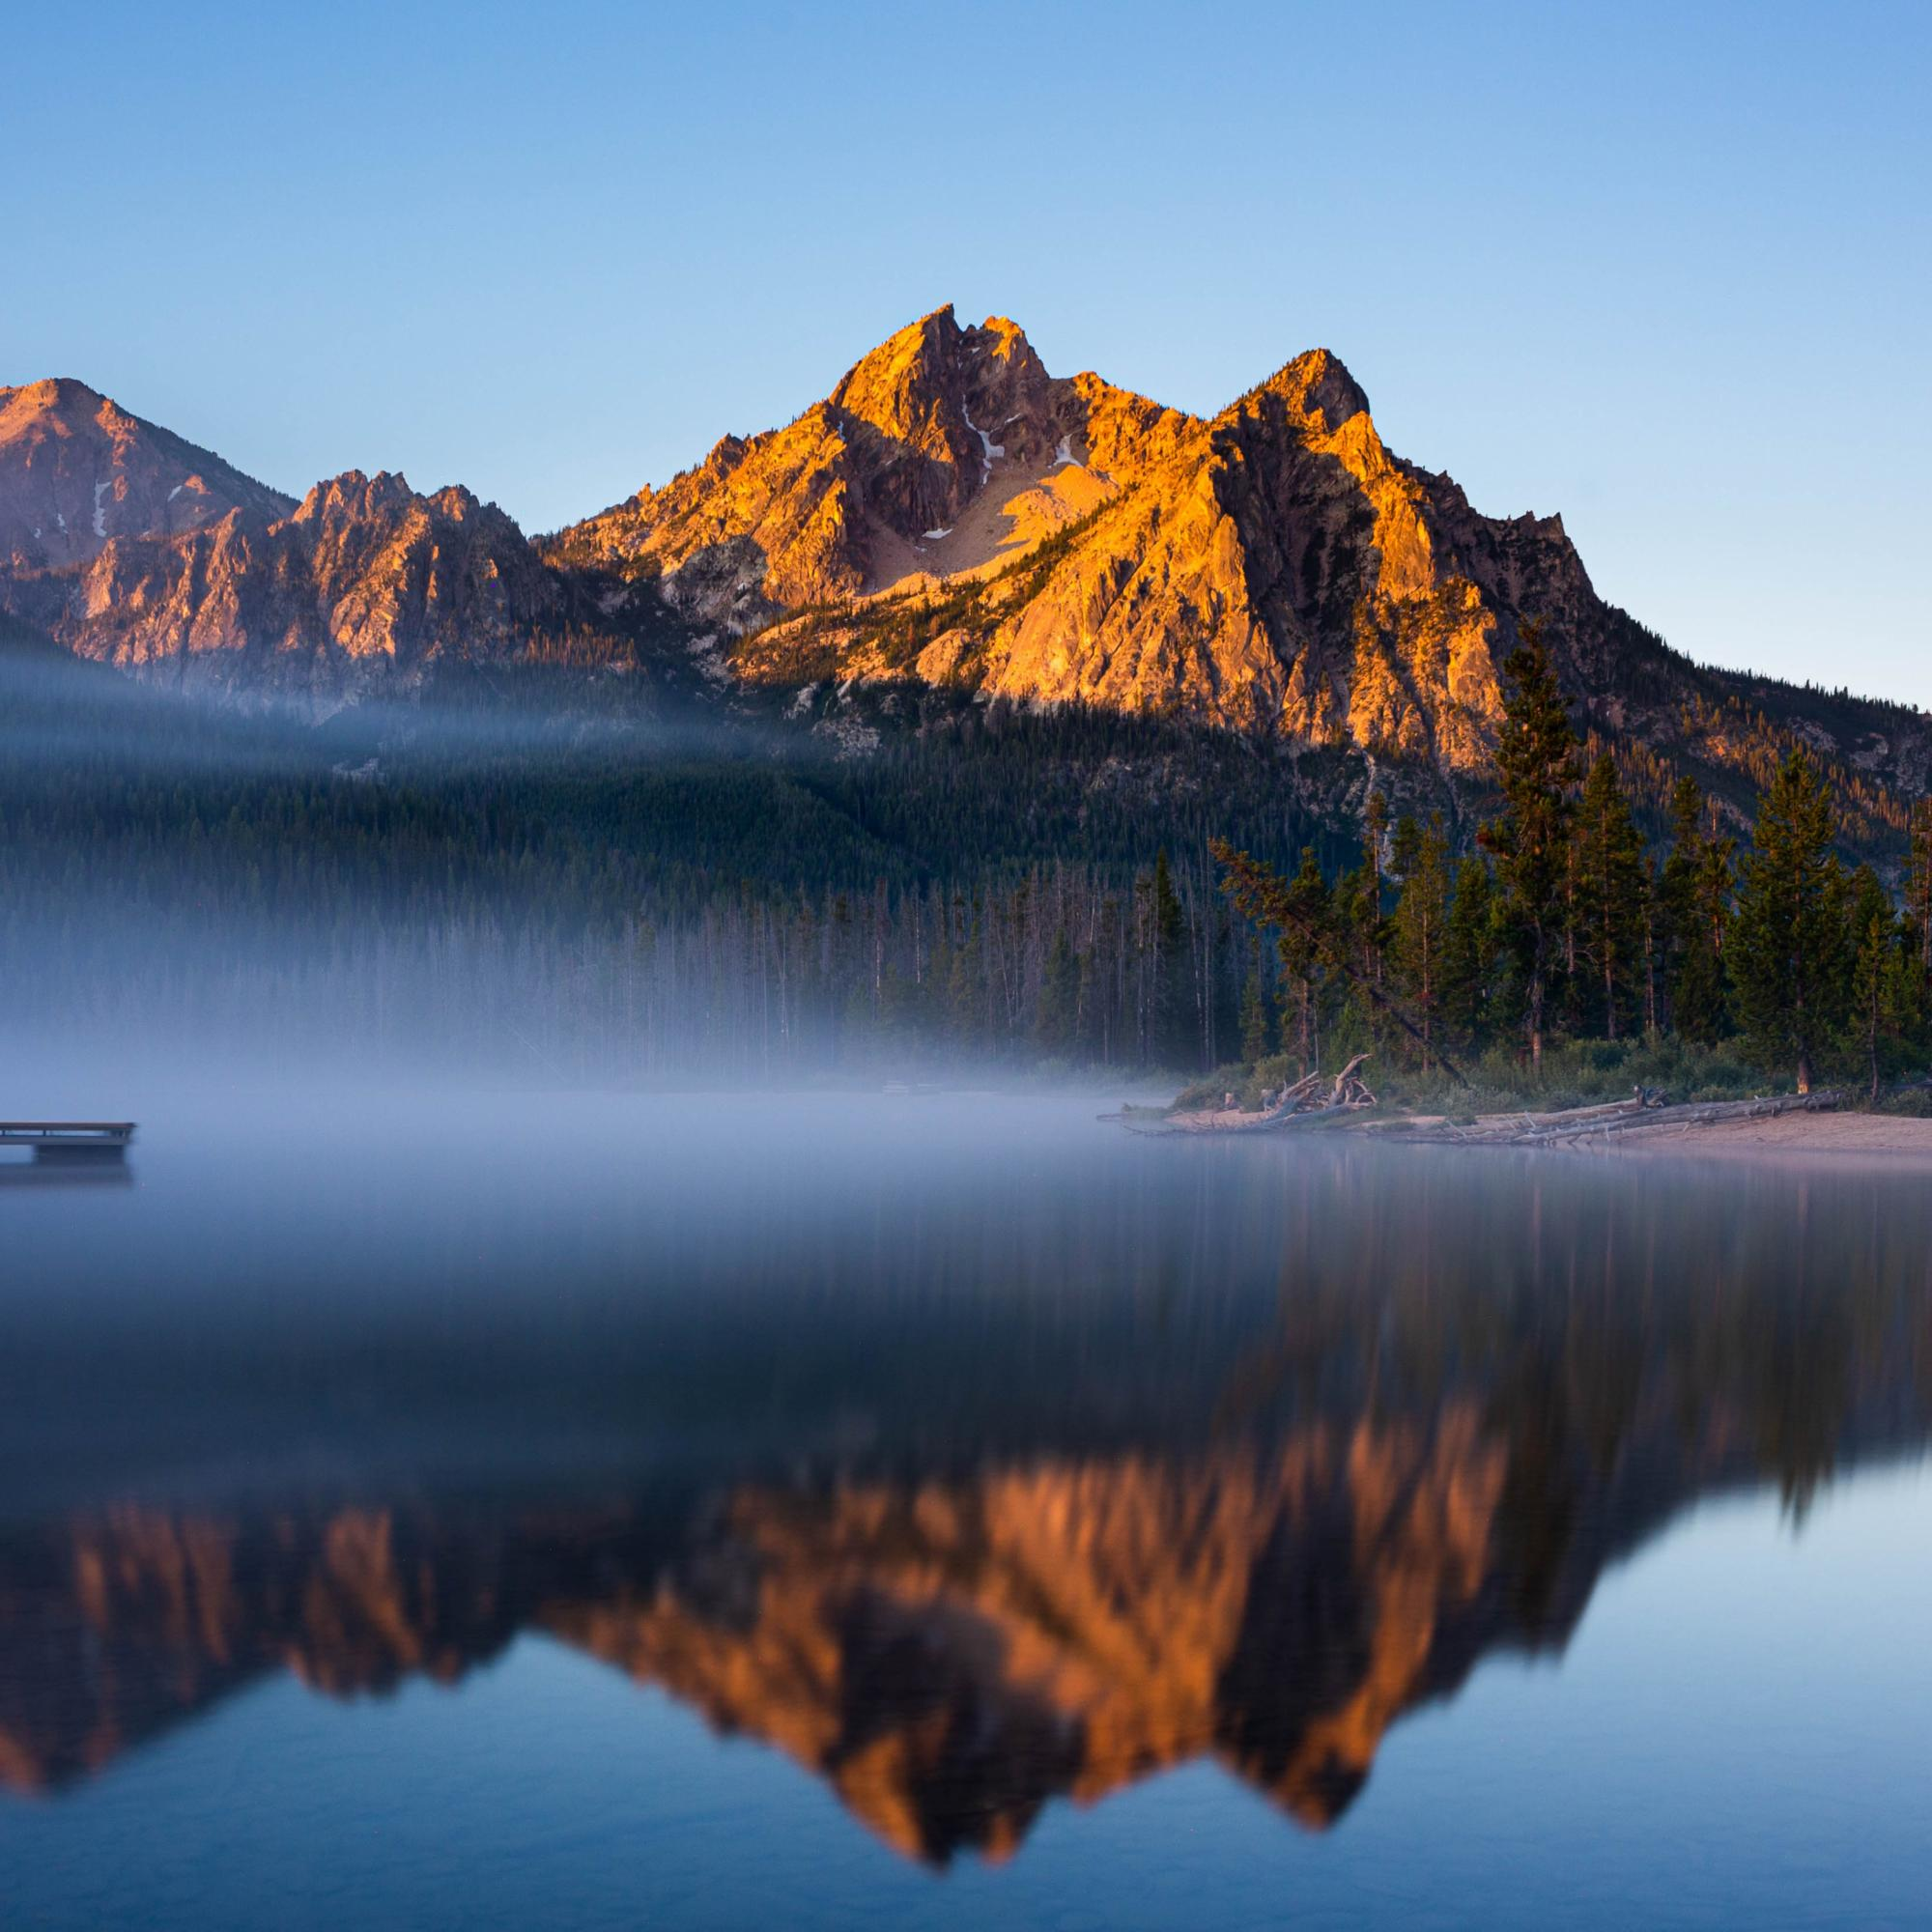 McGown Peak Reflection